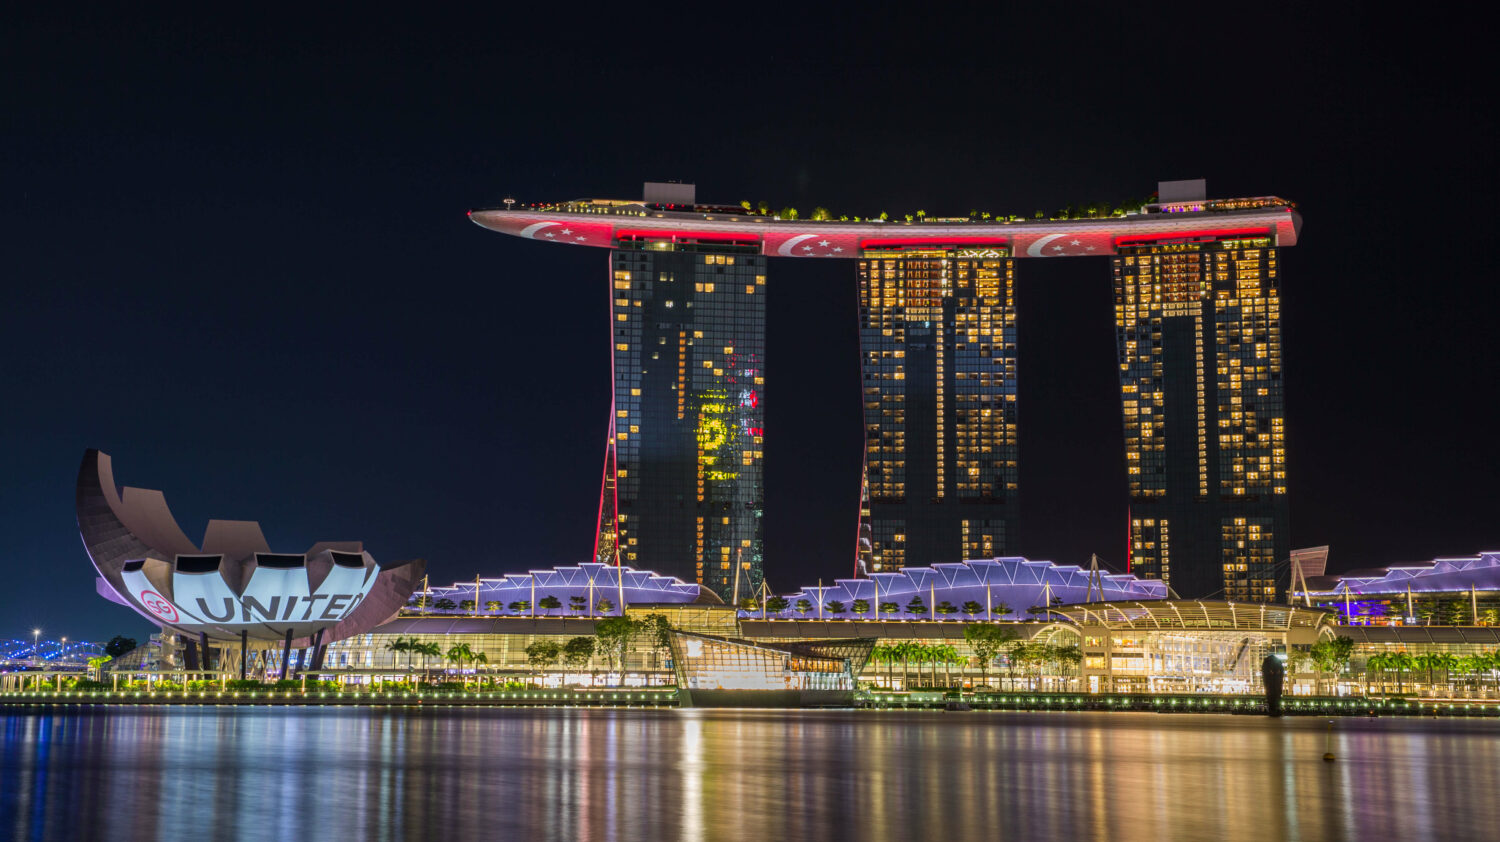 facade-marina bay sands singapore